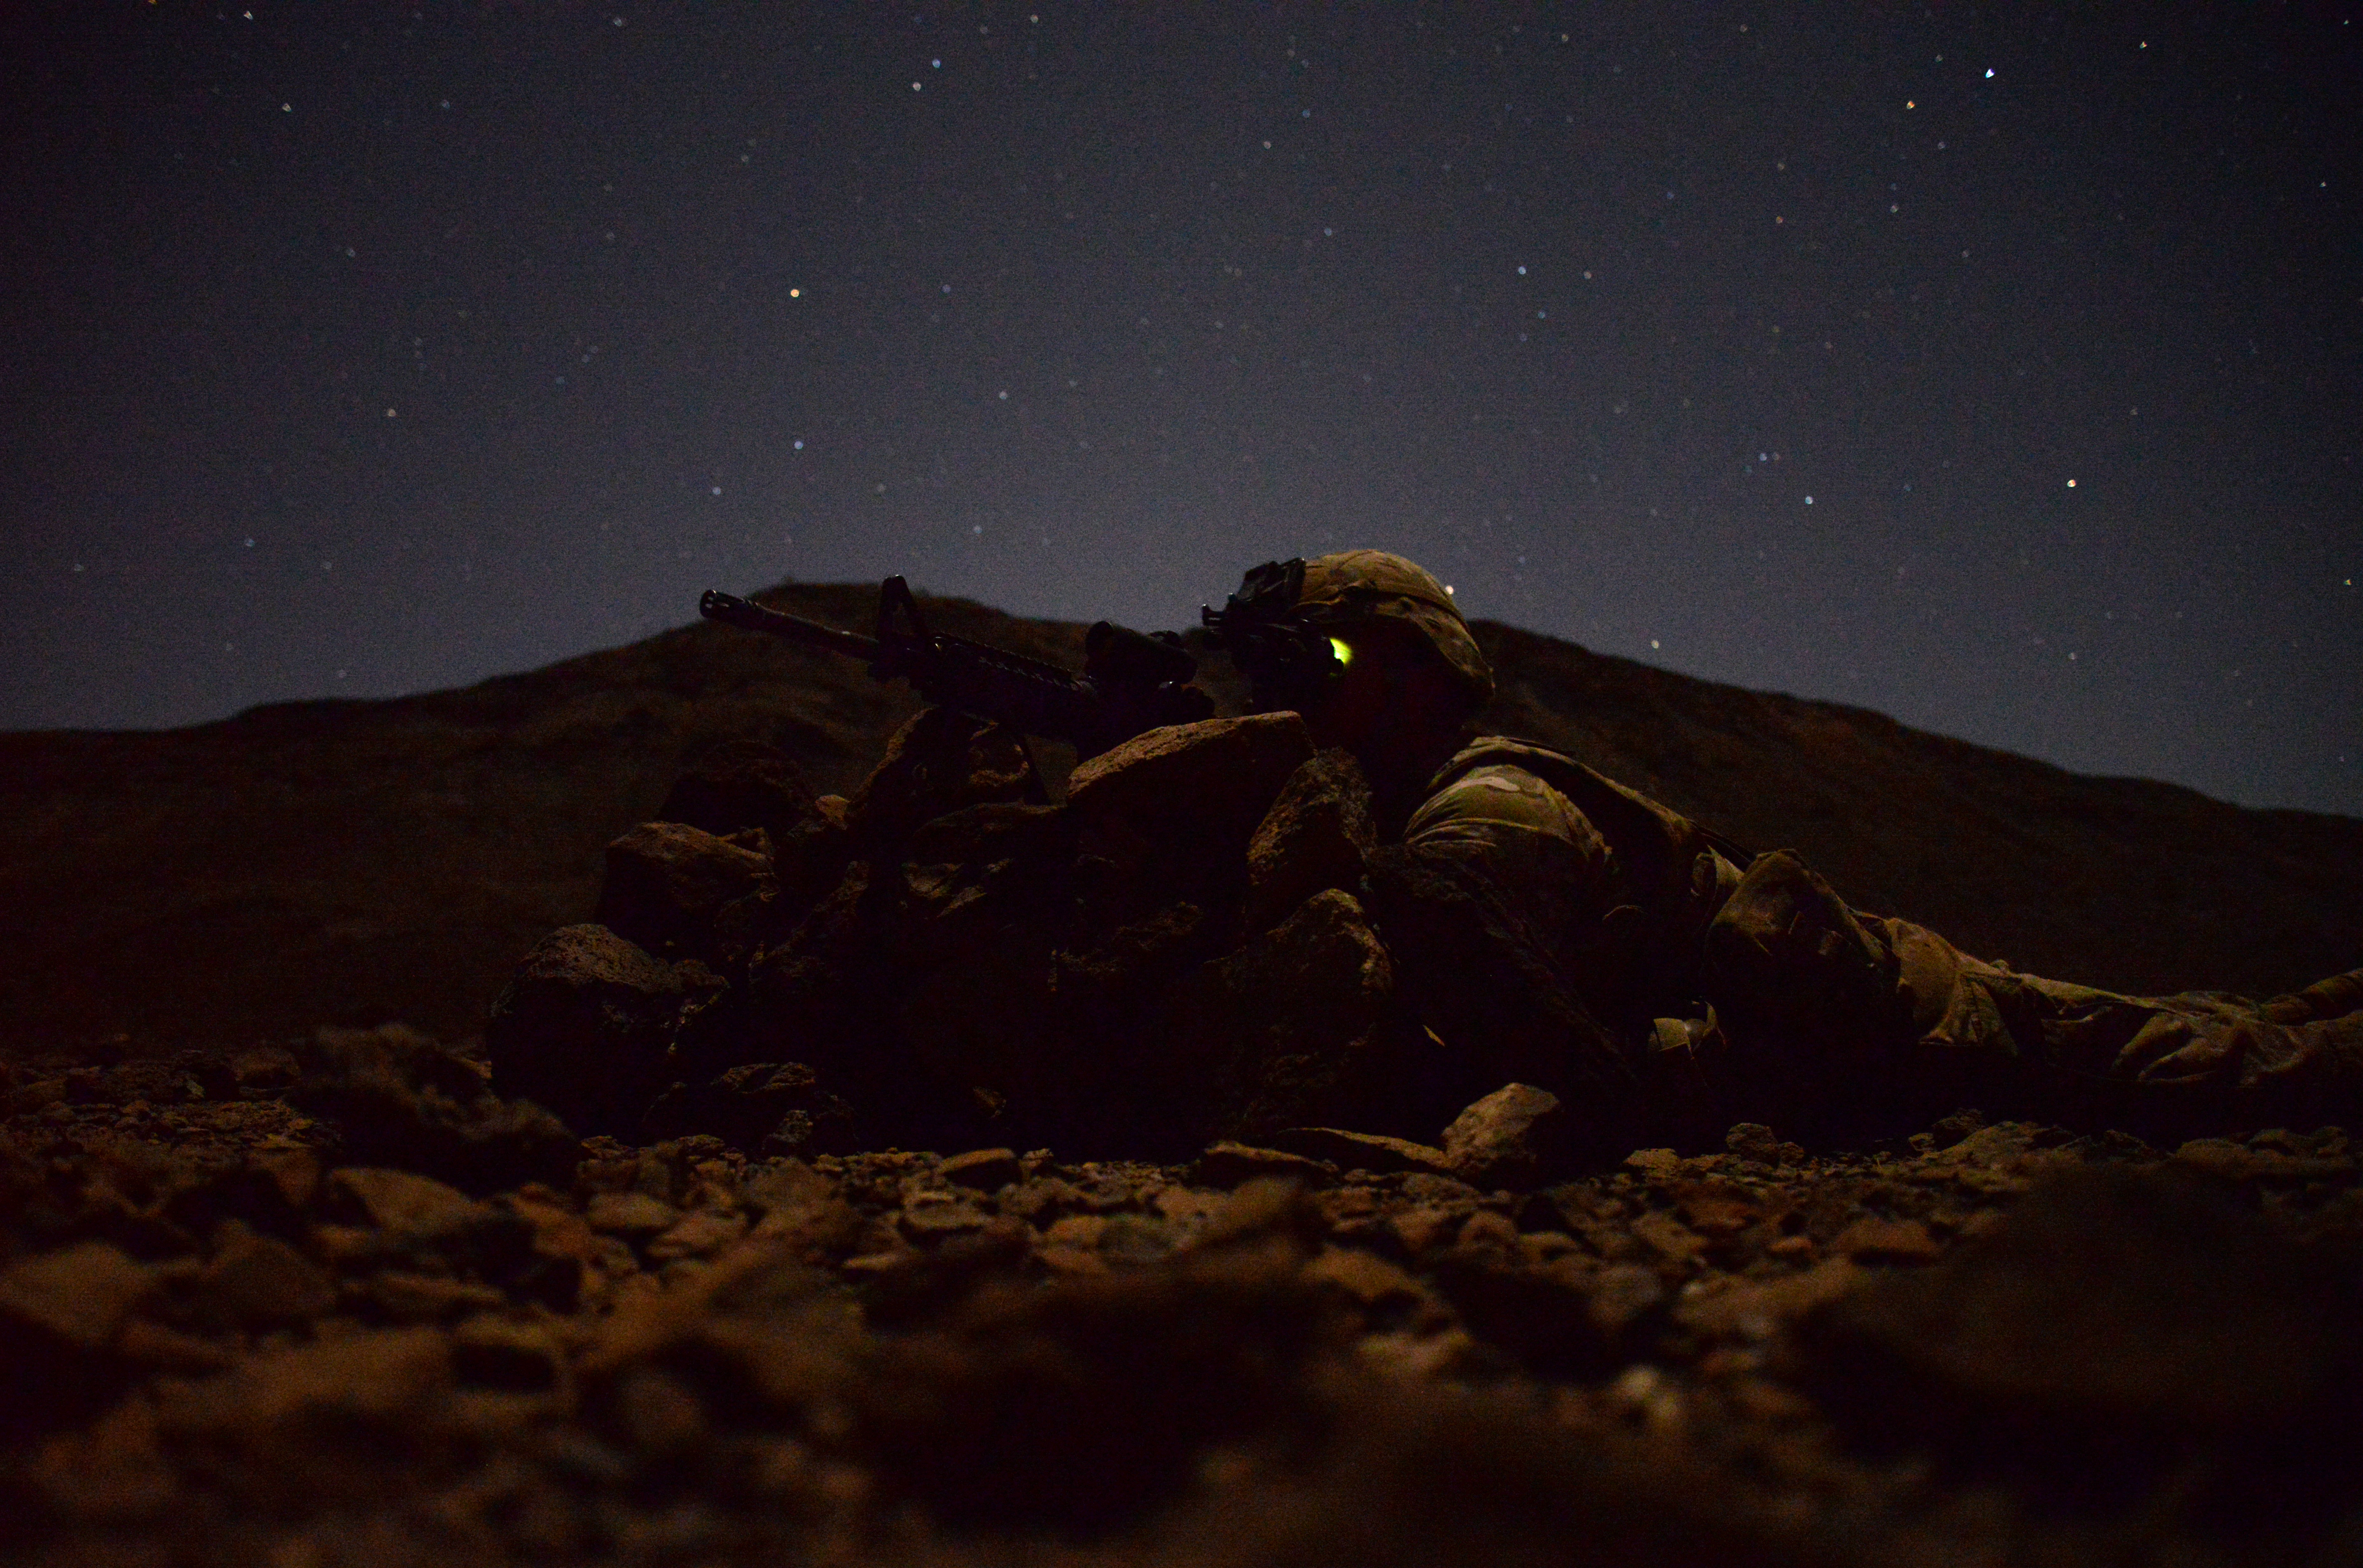 U.S. Army Spc. Micah Whitten, 2-124 Seminole Battalion infantry member, watches his area of responsibility during a field training exercise March 16, 2016, in Arta, Djibouti. The Soldiers received attacks throughout the night from simulated opposing forces, requiring the Soldiers to quickly take action to defend their post. (U.S. Air Force photo by Staff Sgt. Kate Thornton)